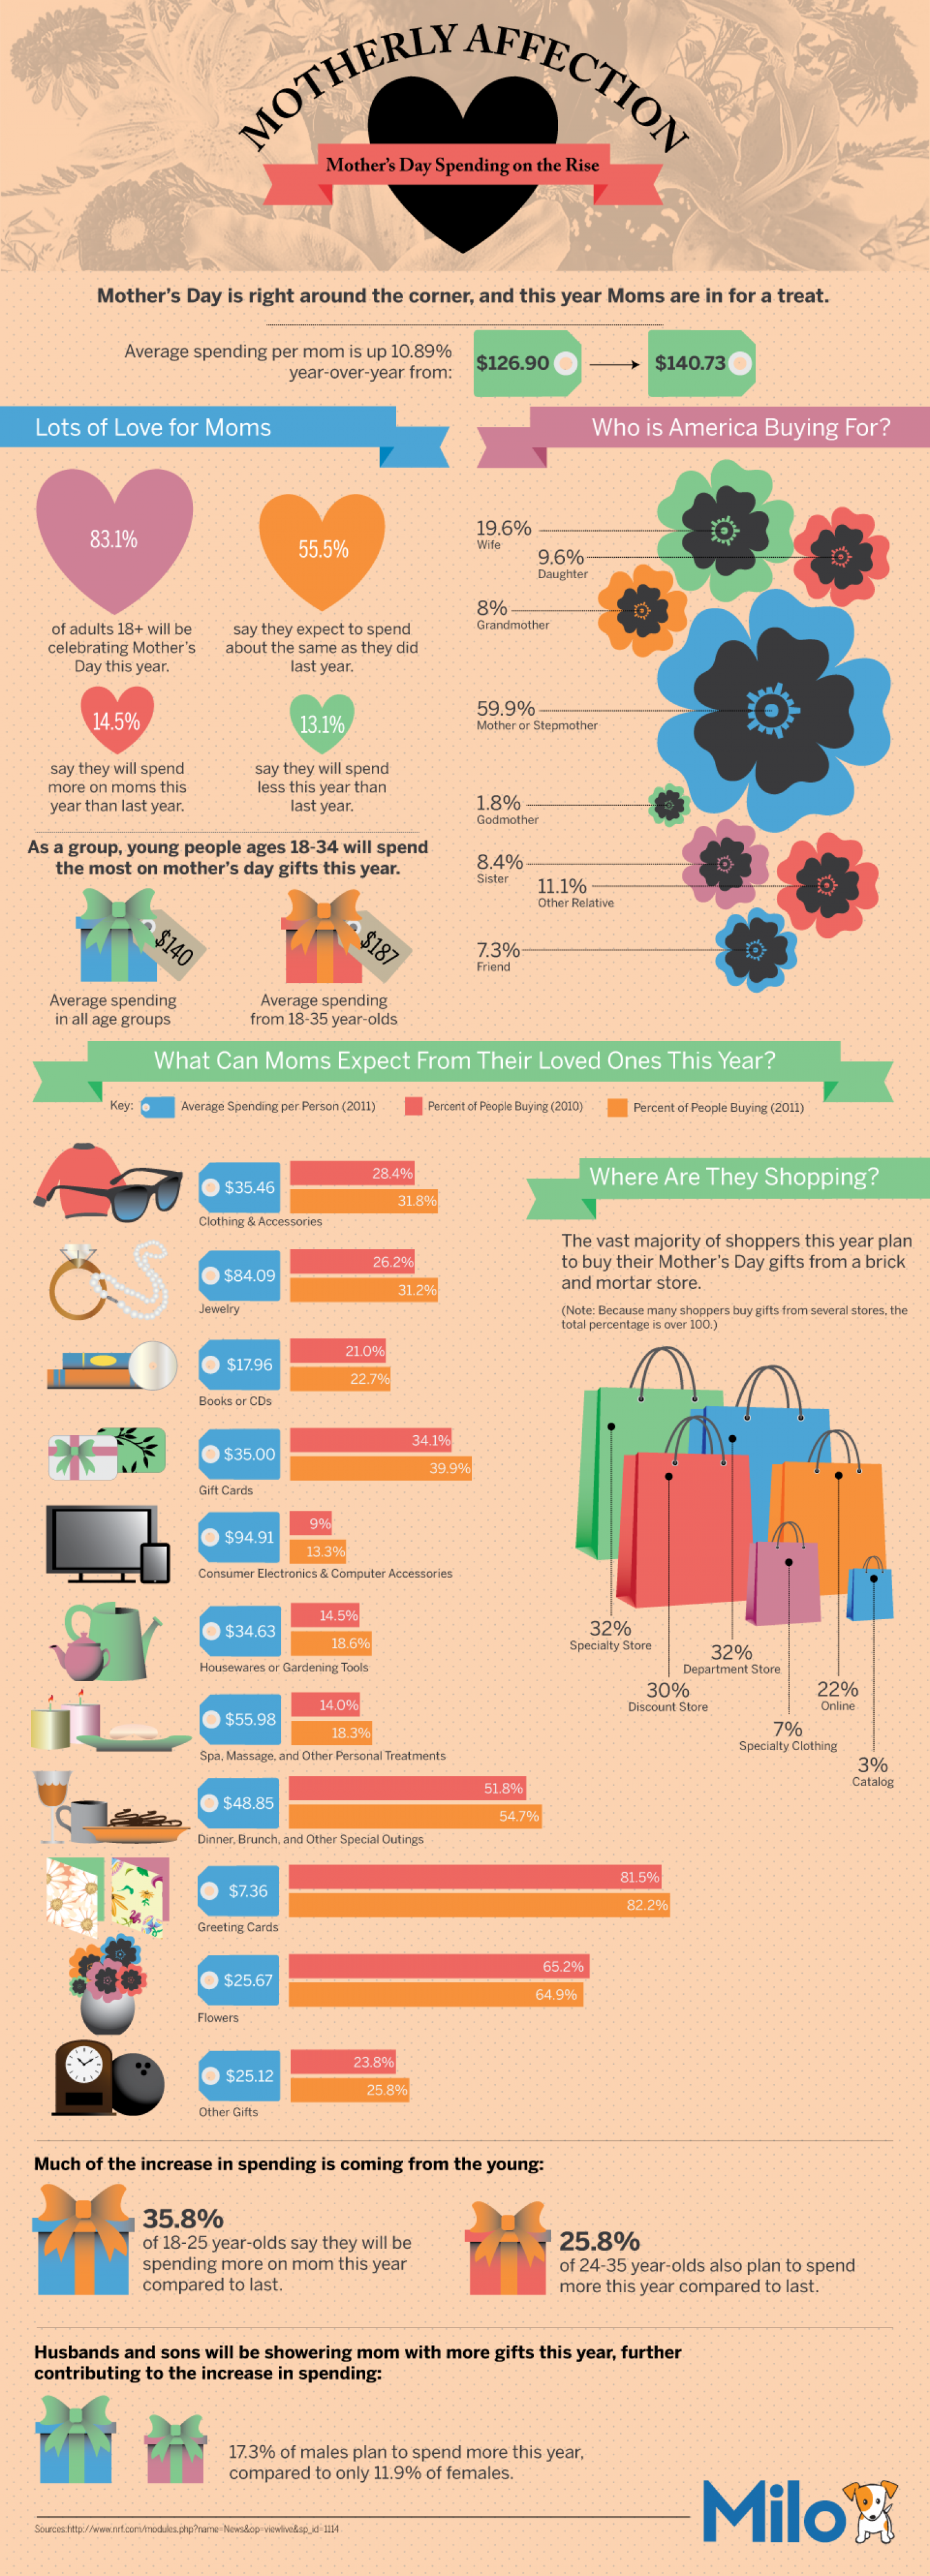 Motherly Affection: Mother's Day Spending on the Rise Infographic